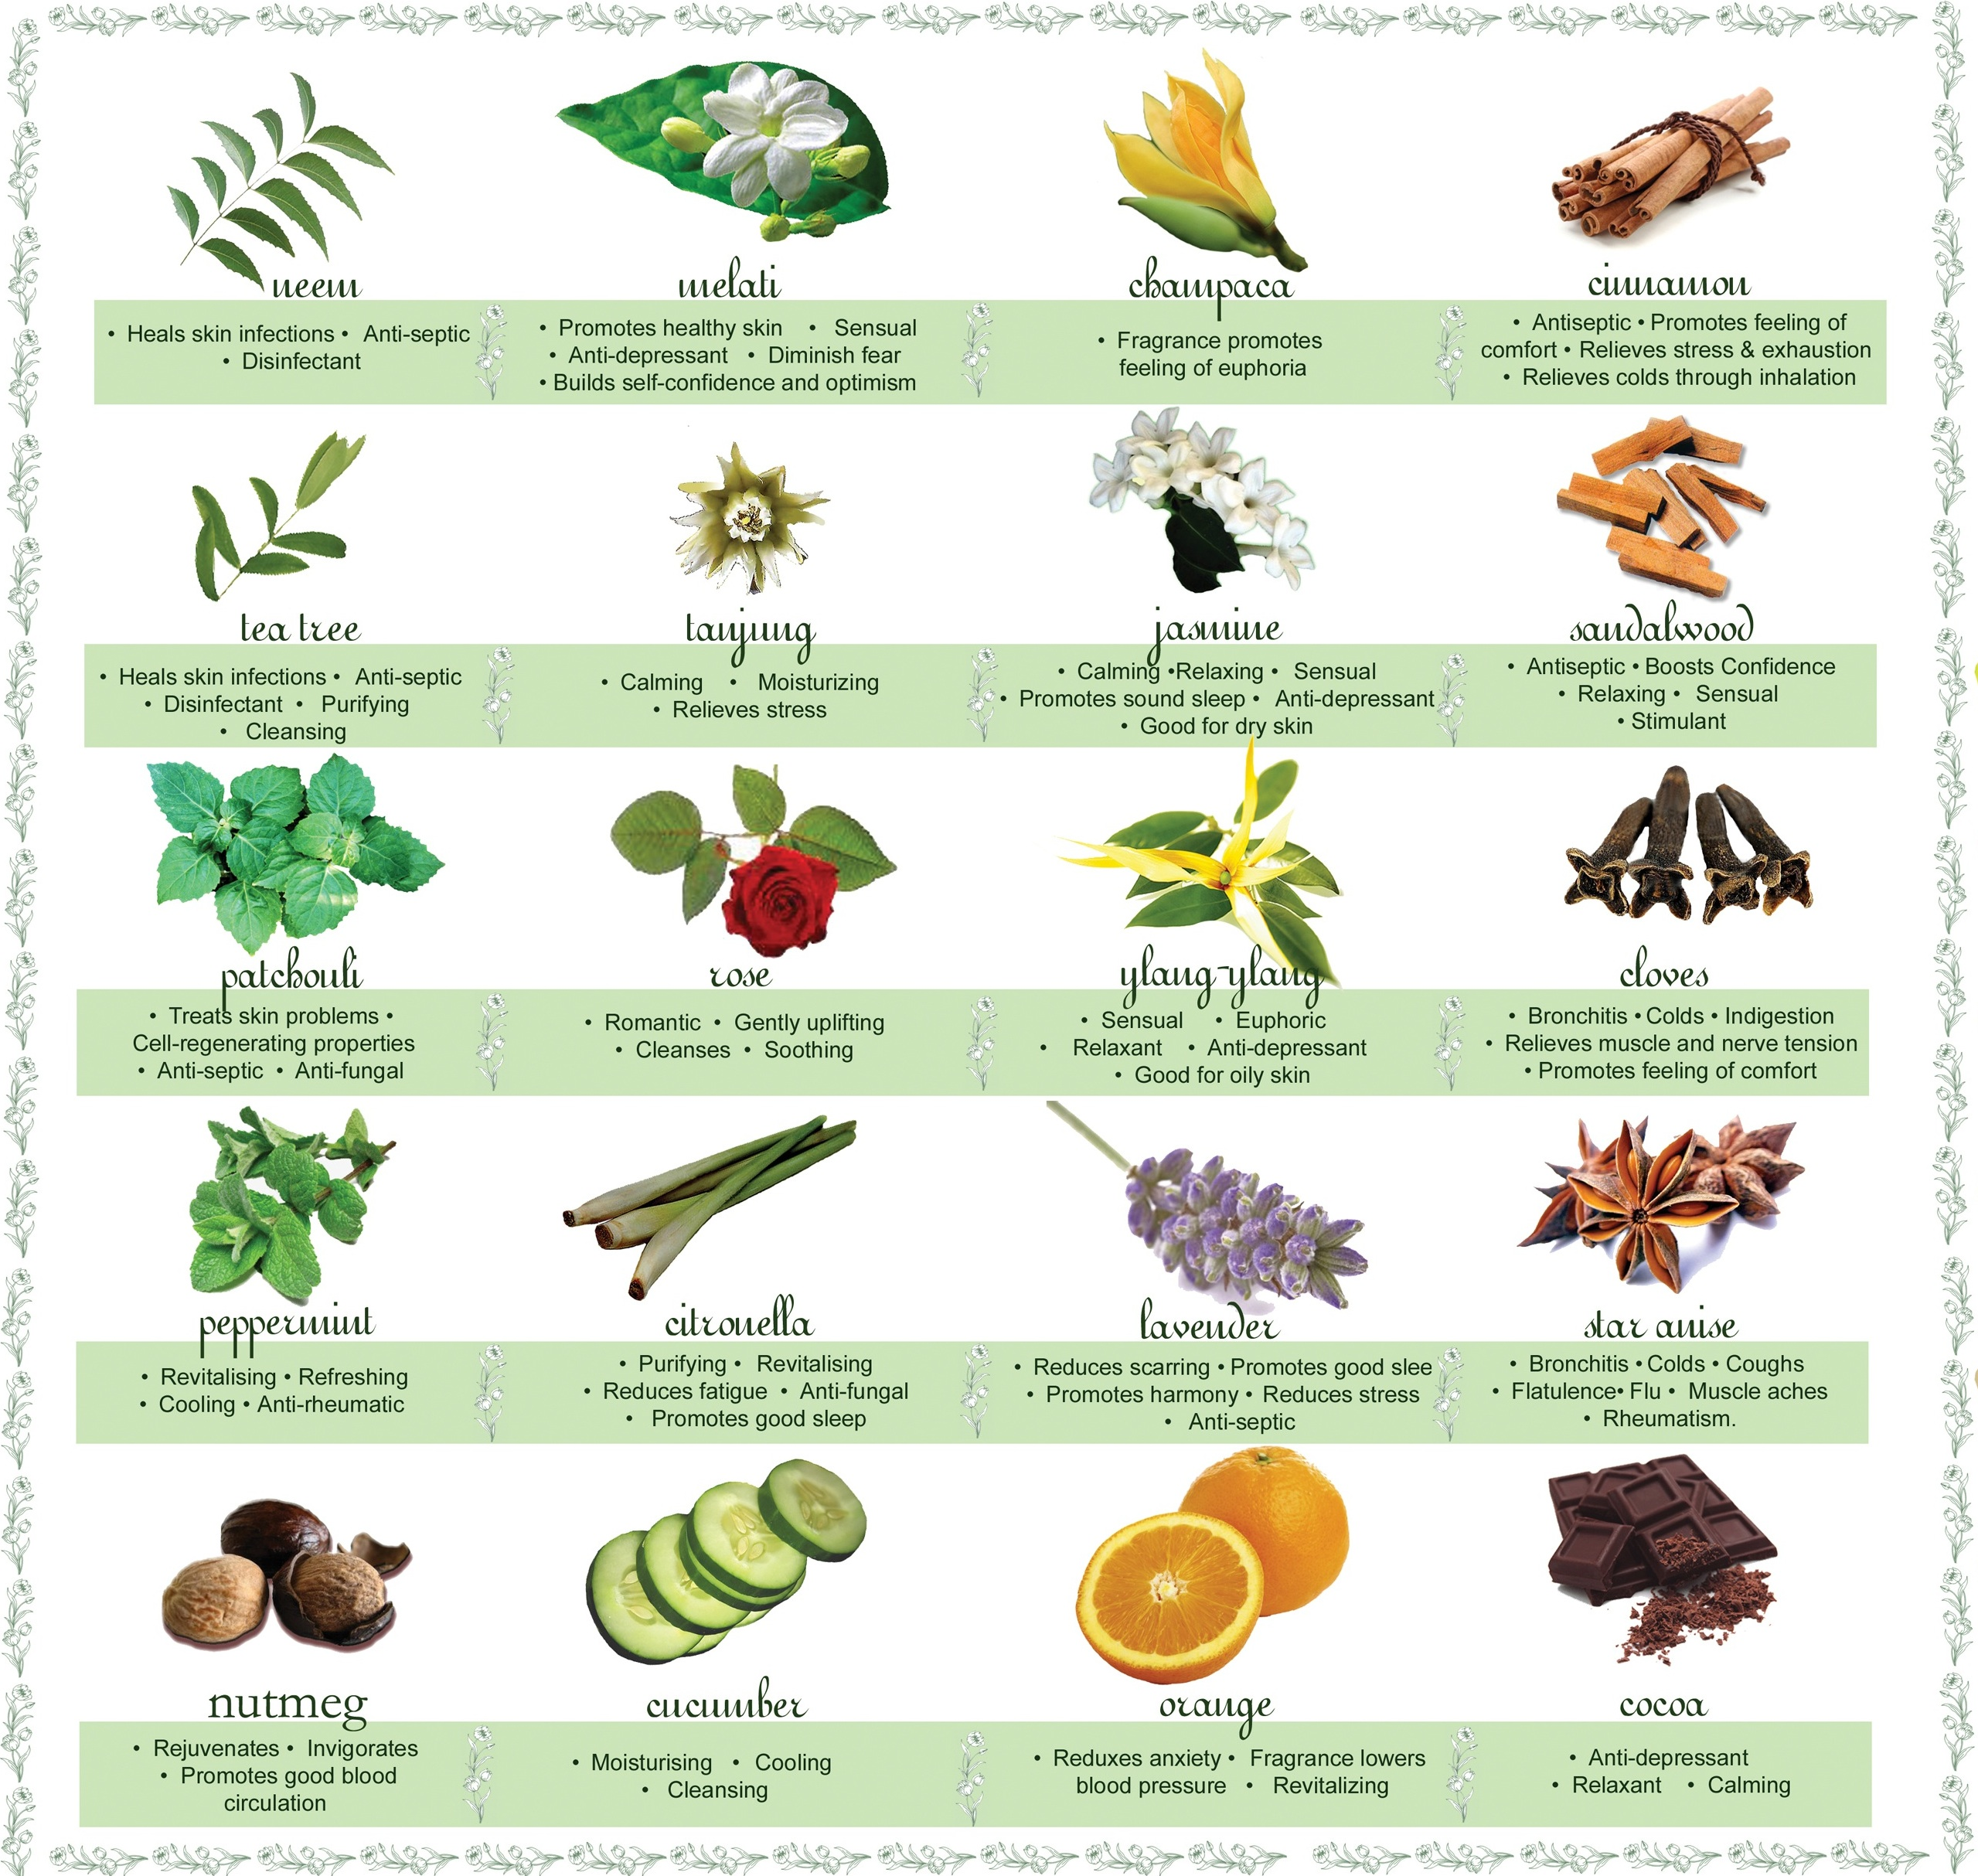 Handy dandy chart on the uses of different essential oils